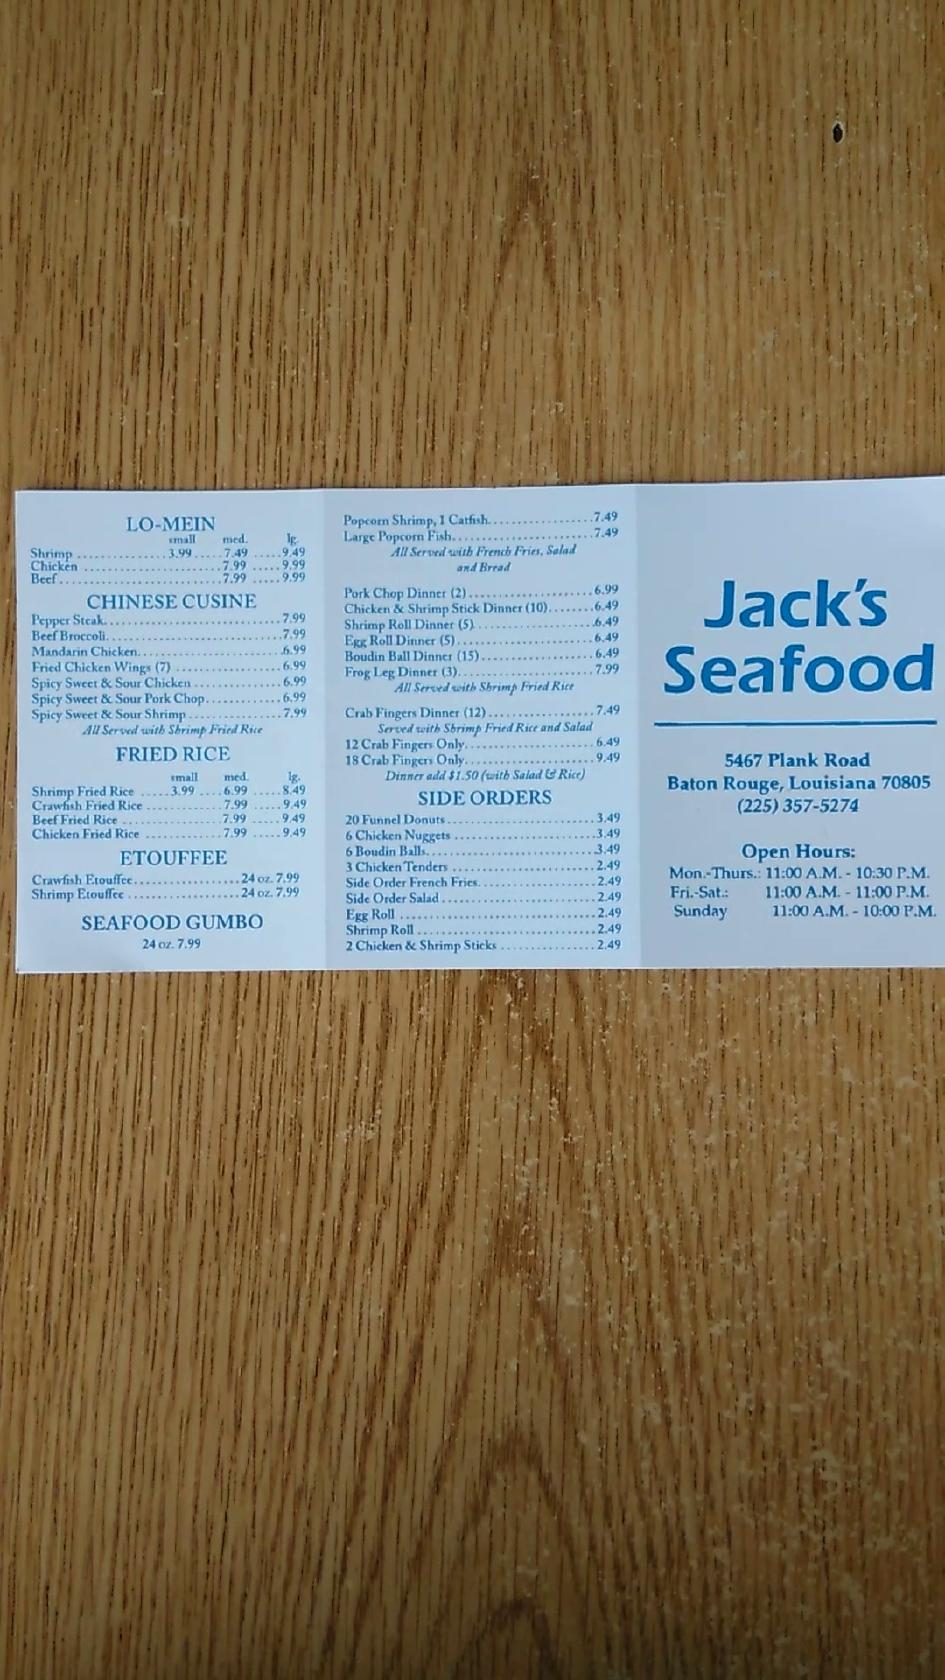 Jacks Seafood in Baton Rouge ...